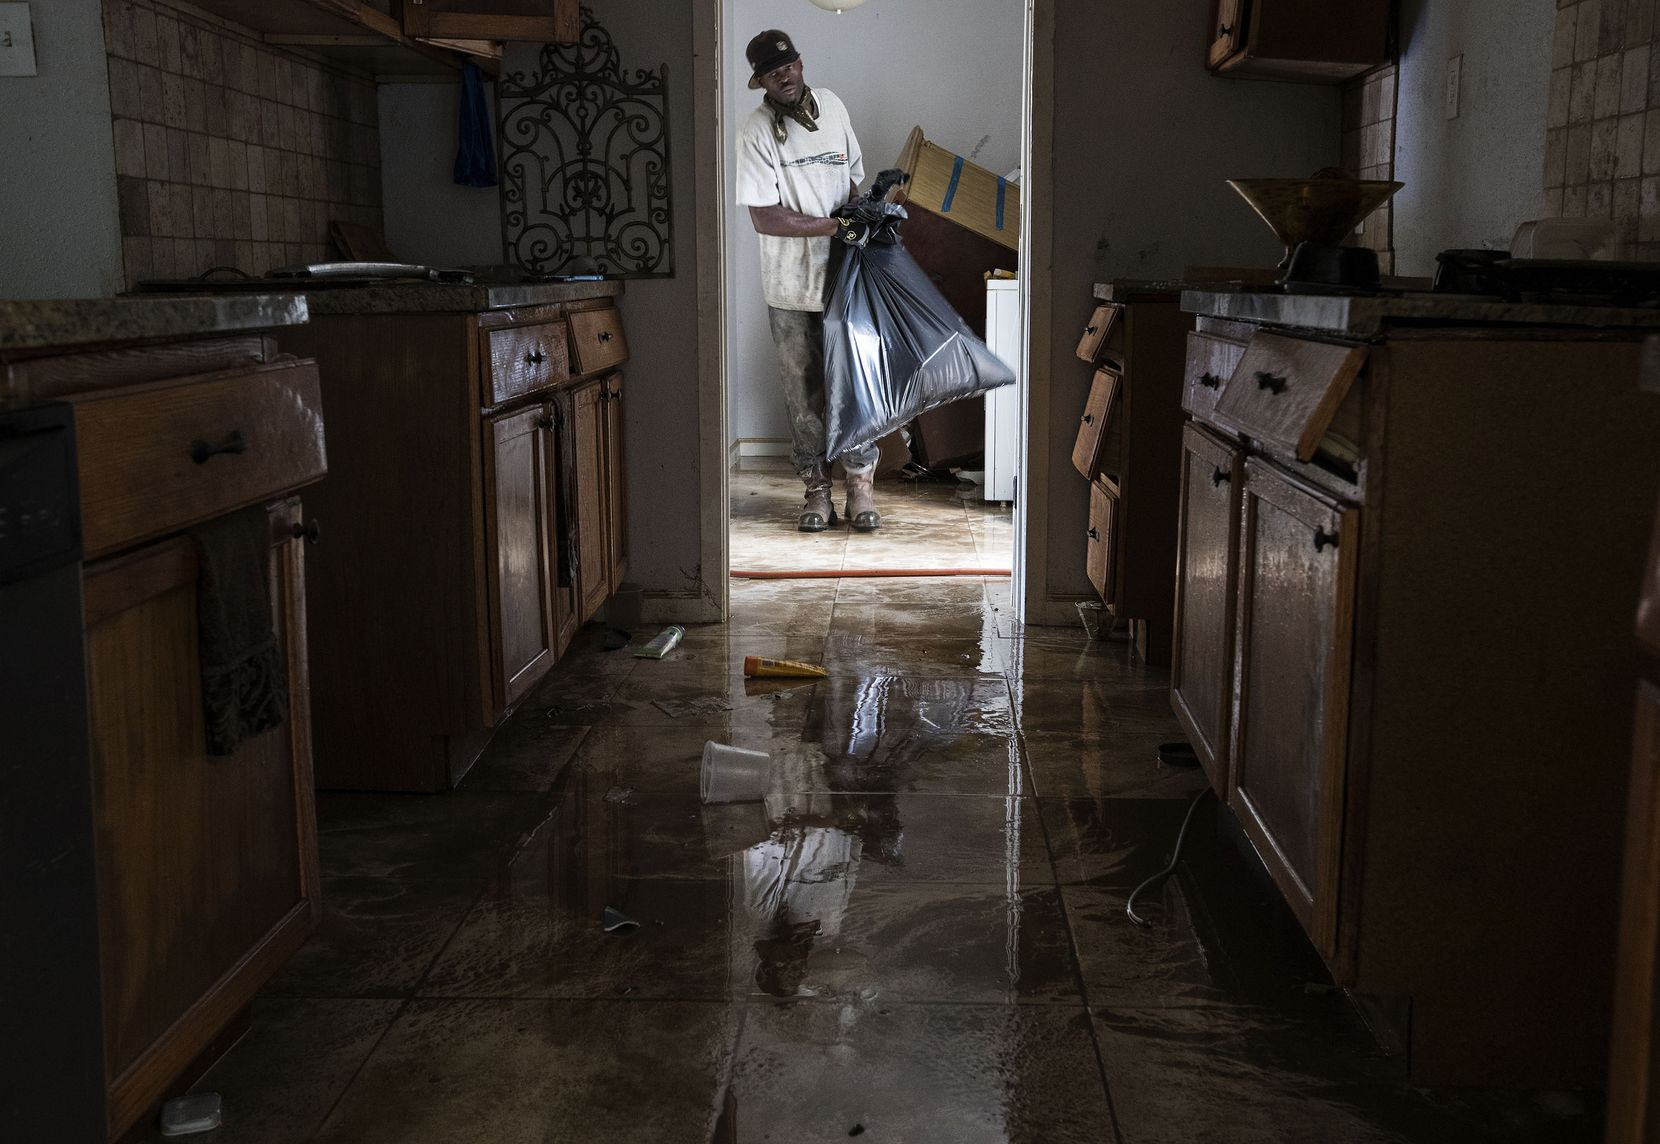 Ron Hardy helped clean out  Michael Boyd's flooded  home on Wednesday, Aug. 30  in Houston. Harvey's floodwaters started dropping across much of the Houston area, but many thousands of homes in and around the nation's fourth-largest city were still swamped and could stay that way for days or longer.